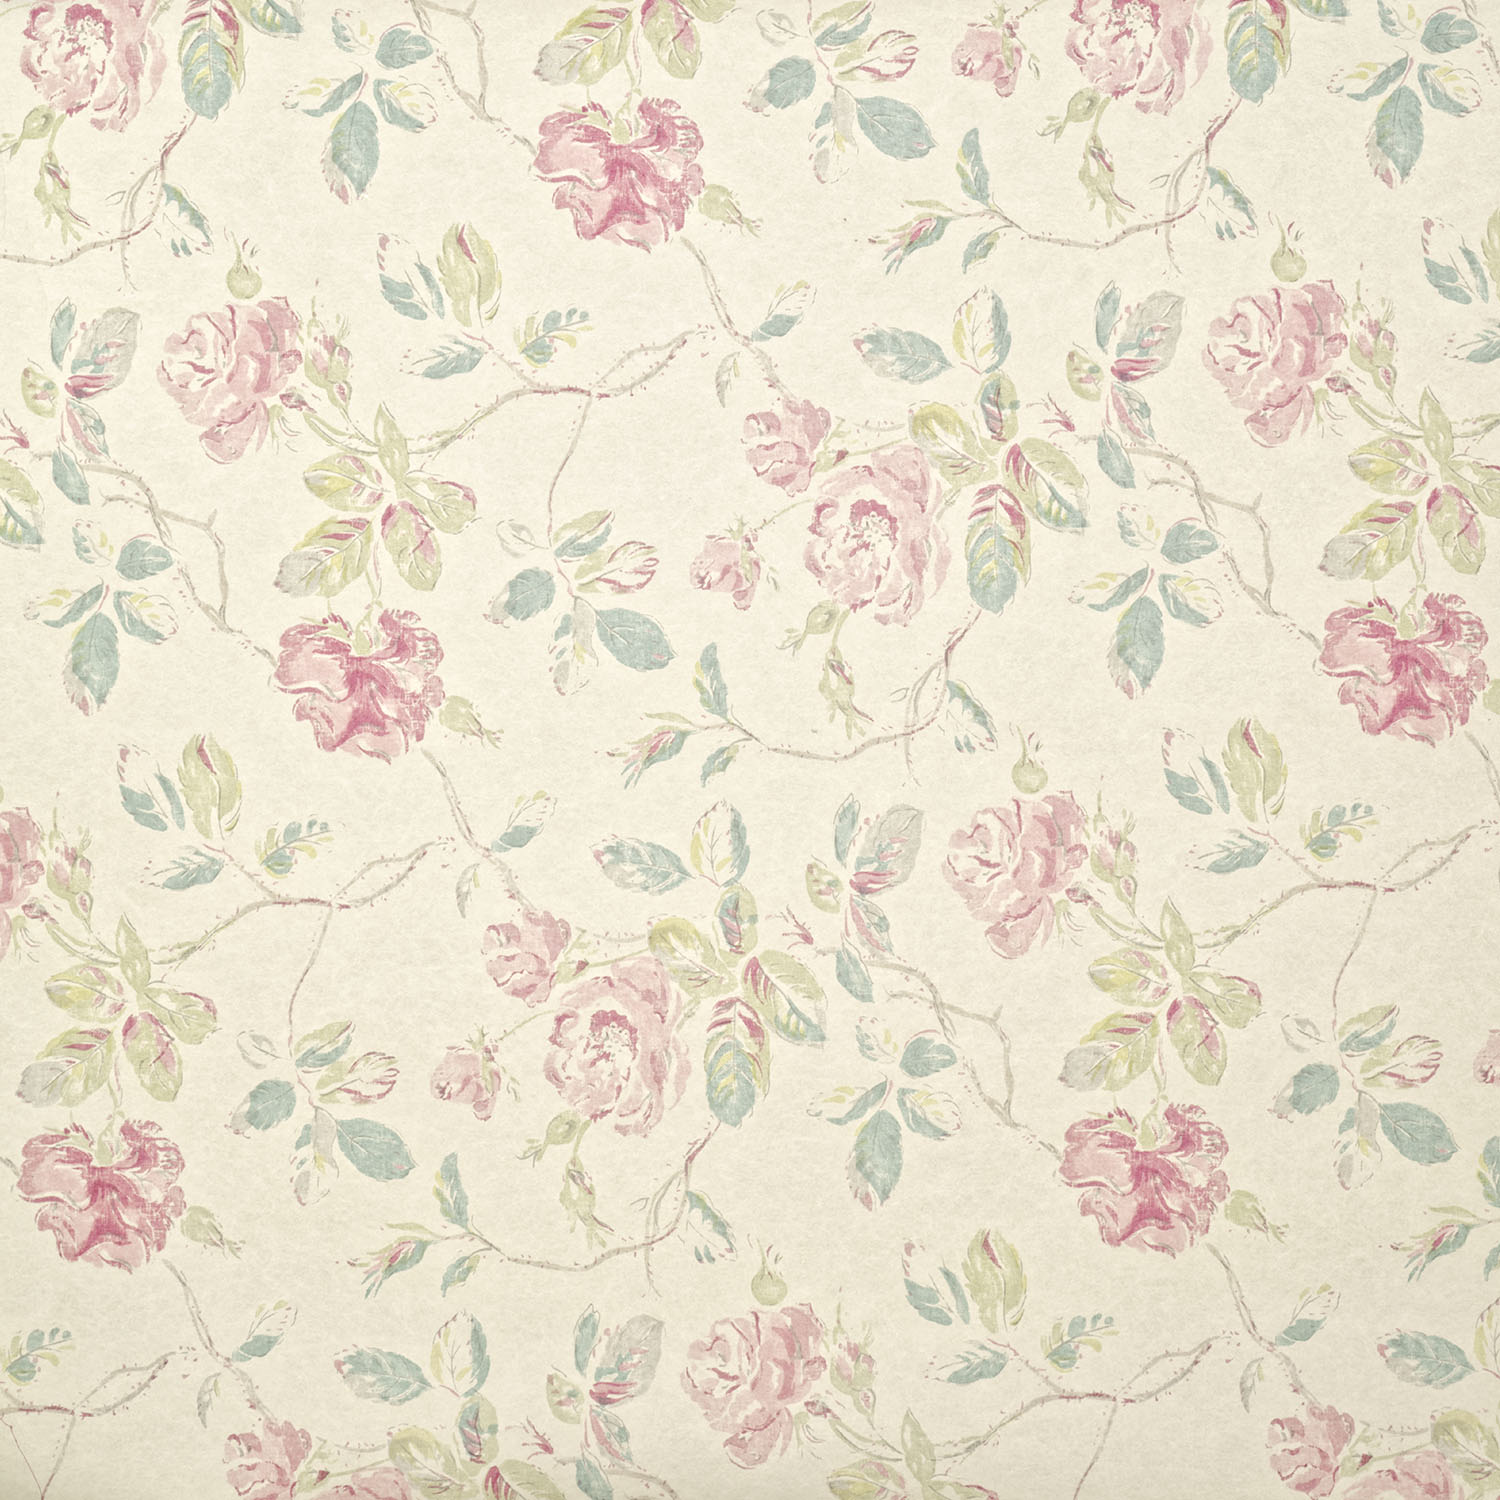 <p><strong>MARLOW</strong>turquoise/pink/cream 980-03<a href=/collection-3/marlow-turquoise-pink-cream-reverse-980-03>More →</a></p>